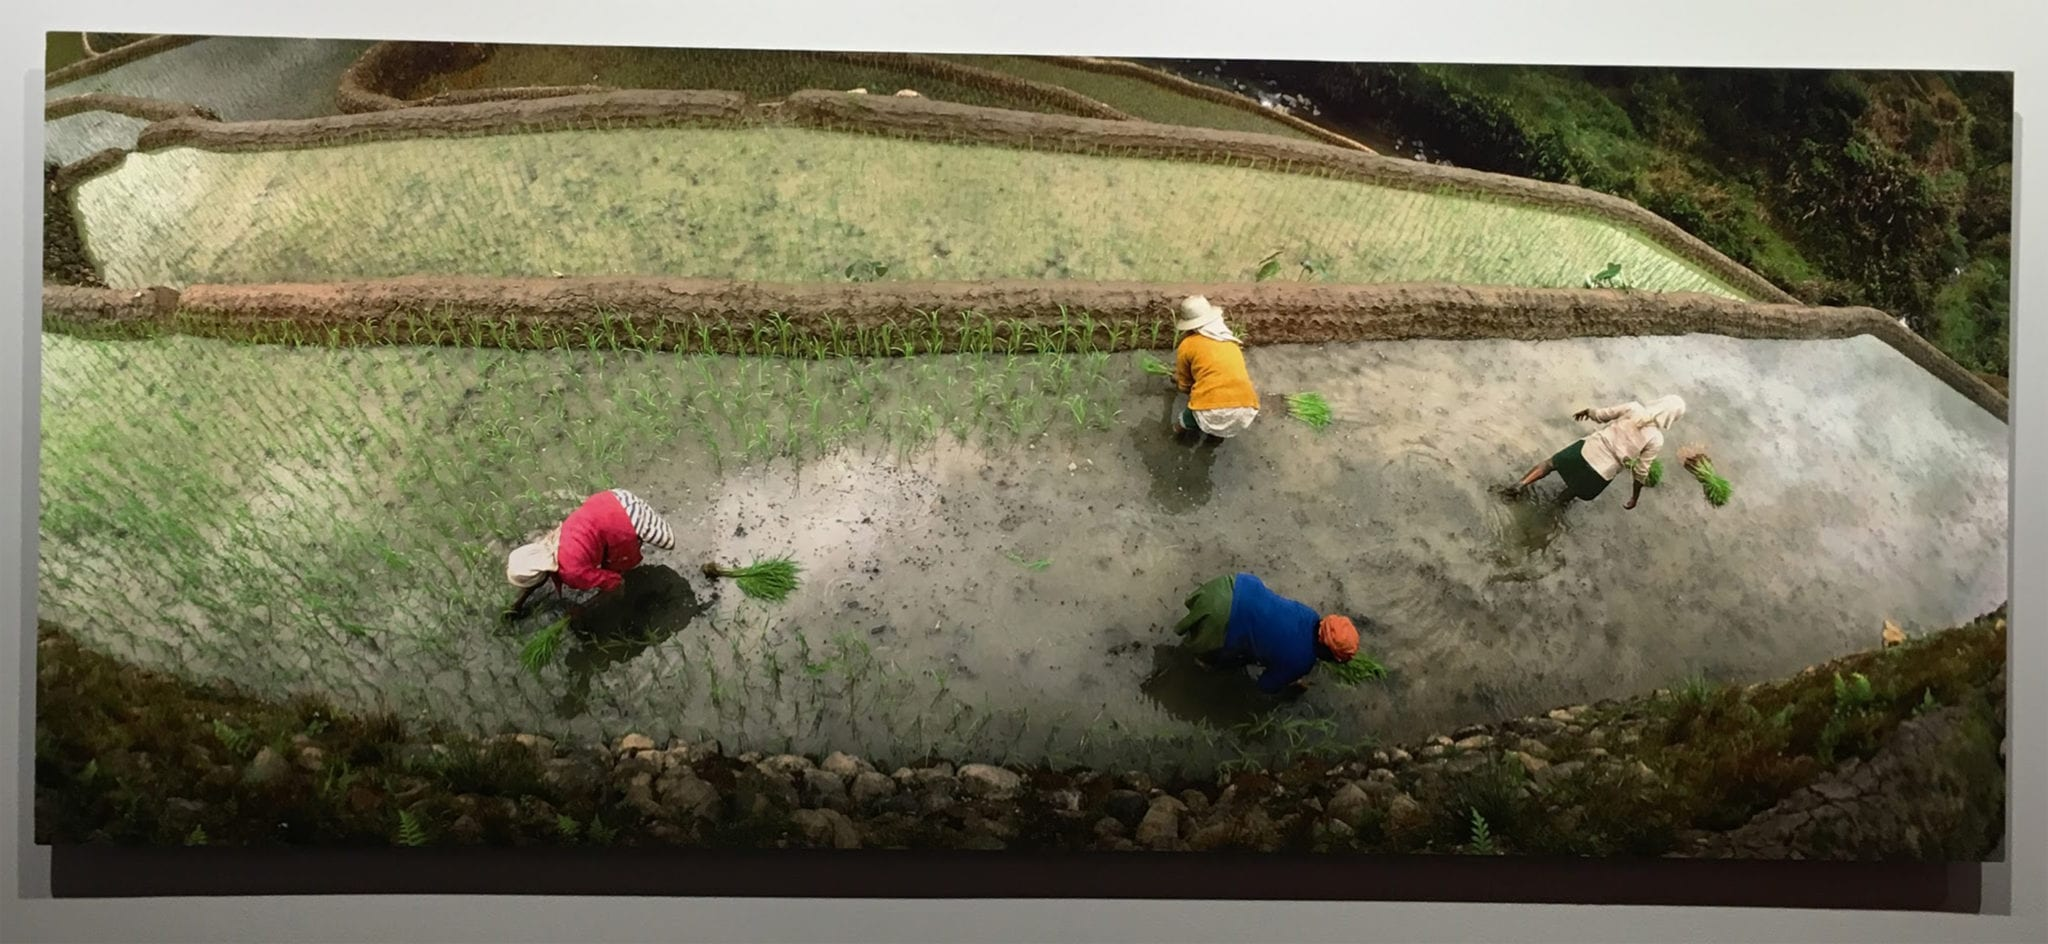 overhead photo of farmers in a rice patty